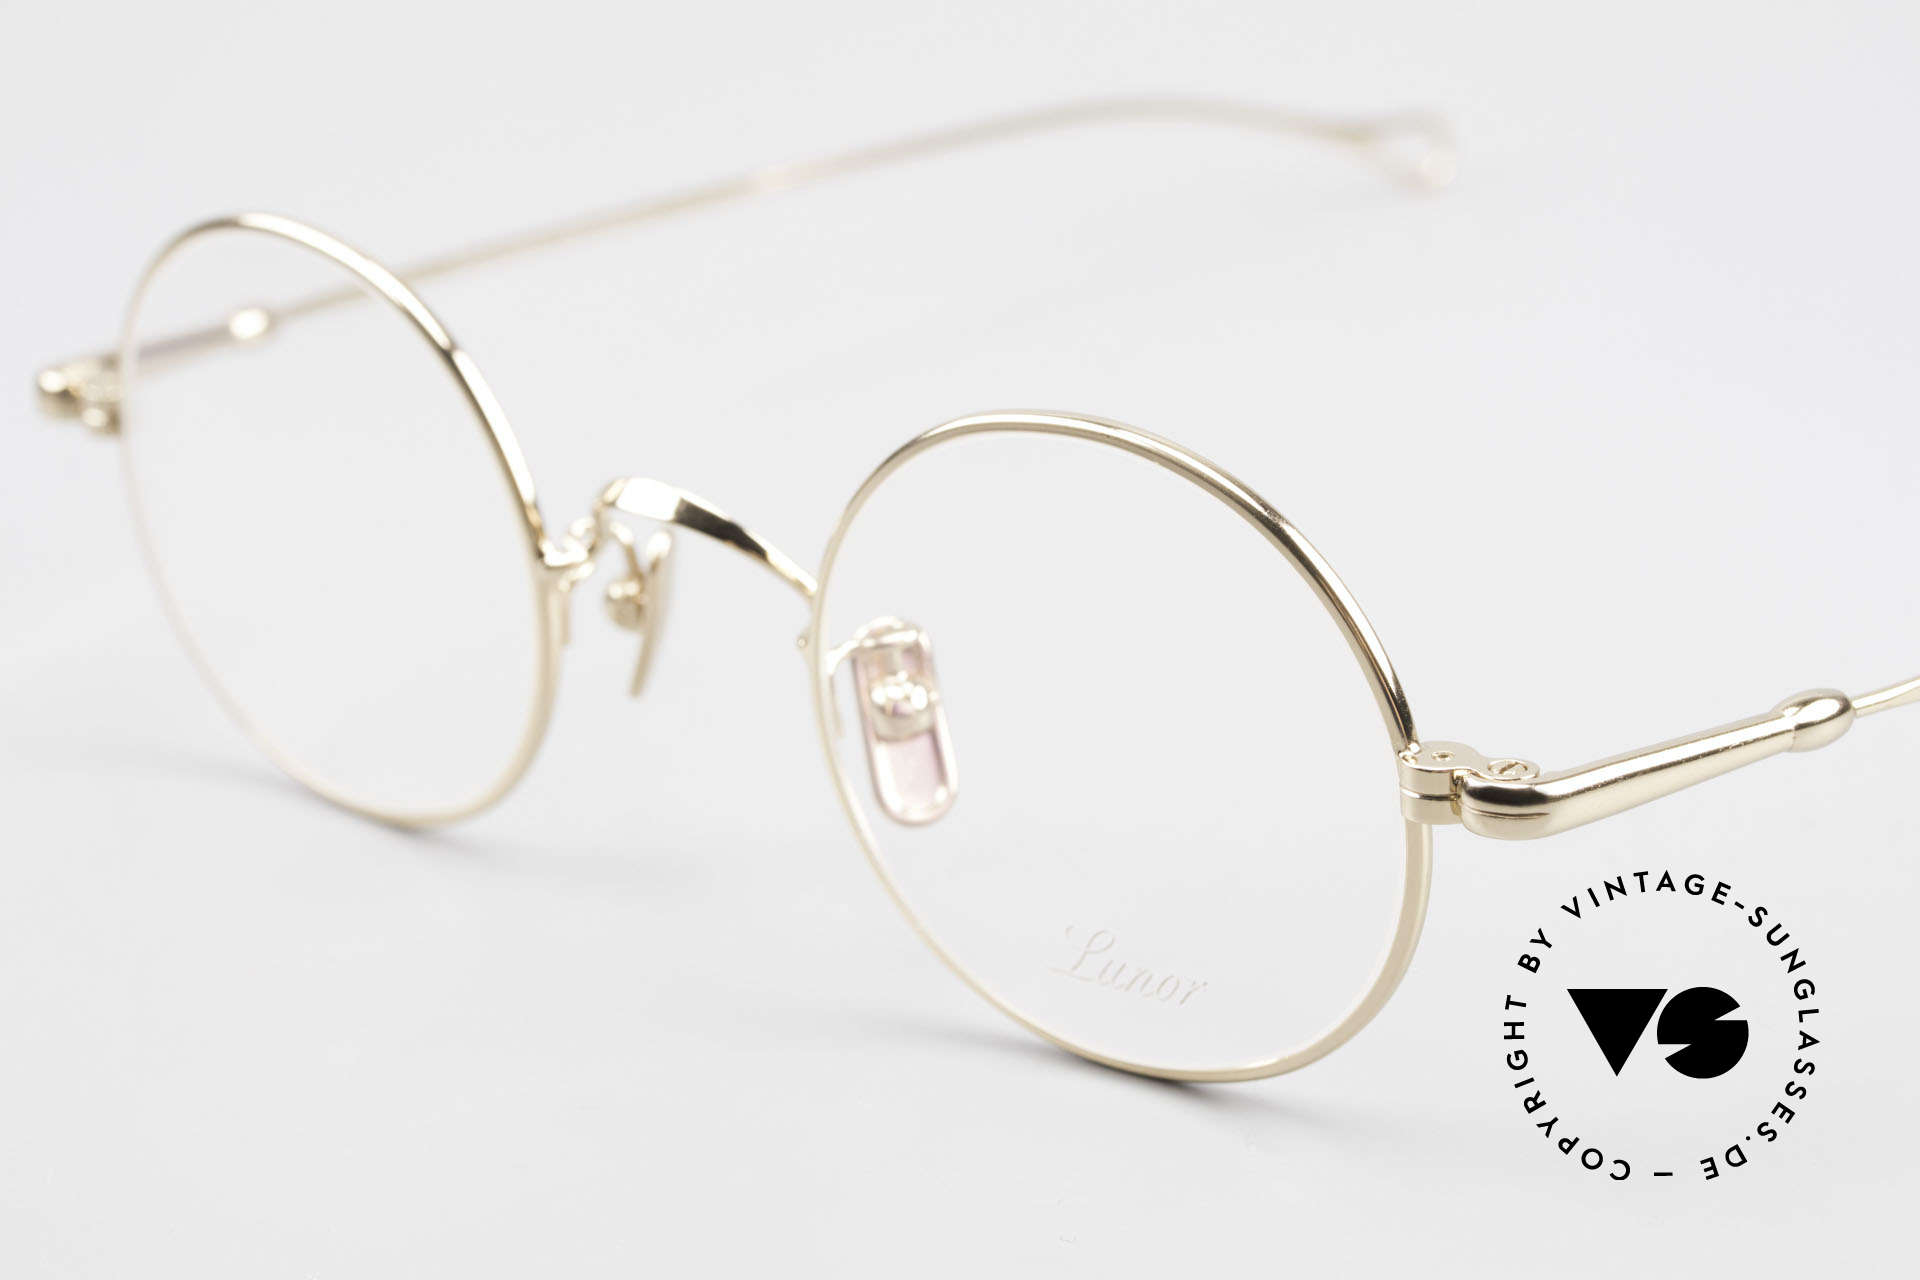 Lunor V 110 Lunor Round Glasses GP Gold, model V110: an eyewear classic for ladies & gentlemen, Made for Men and Women